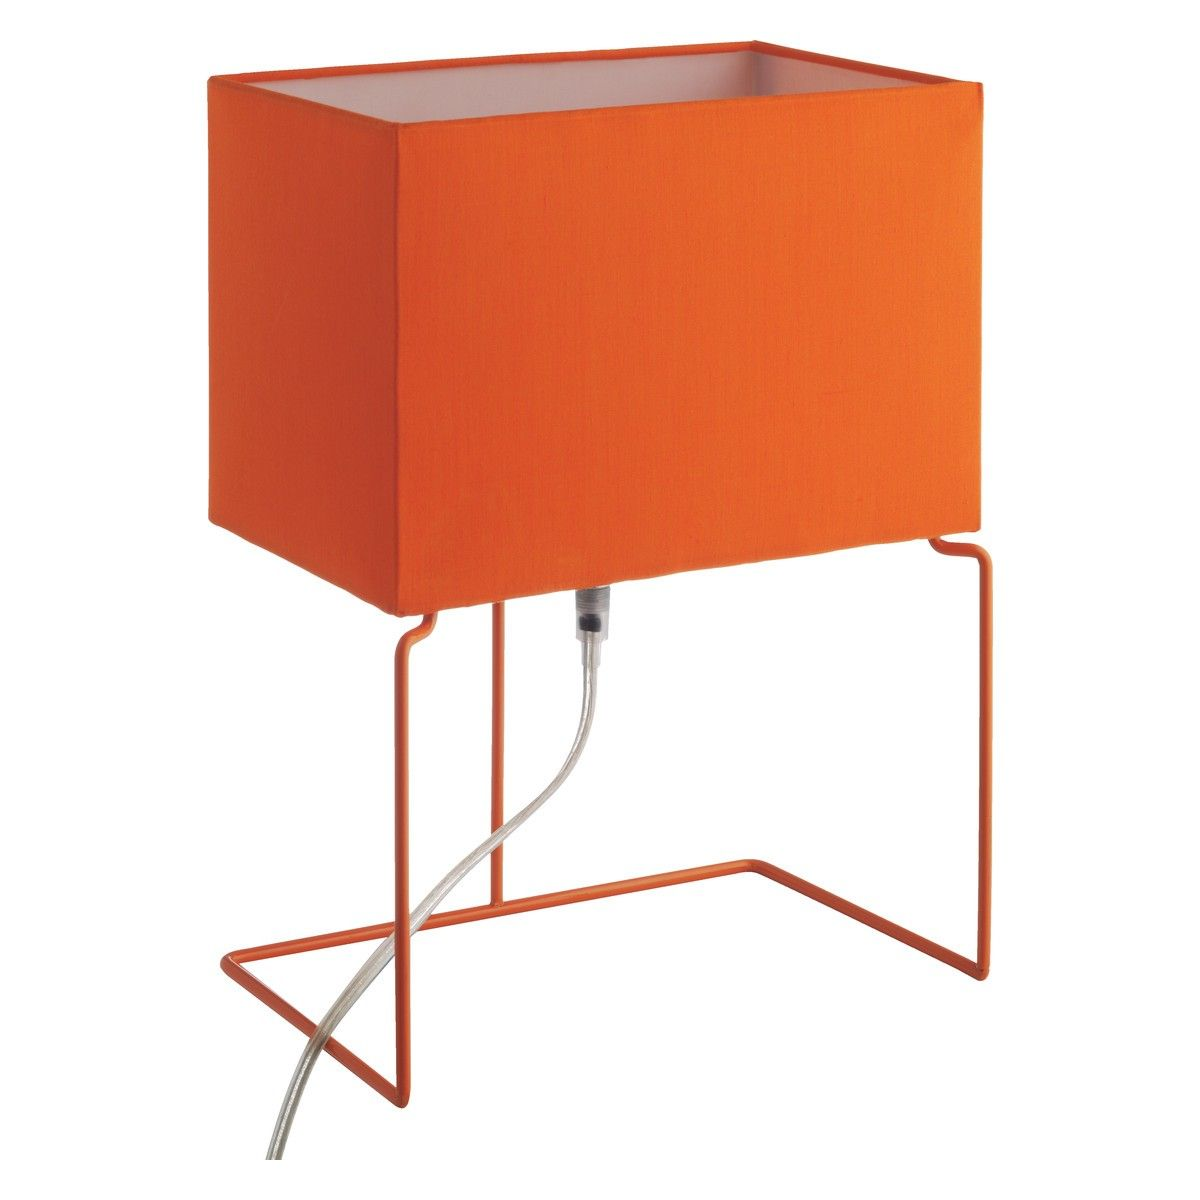 Colore orange metal table lamp regali pinterest metal table colore orange metal table lamp mozeypictures Choice Image